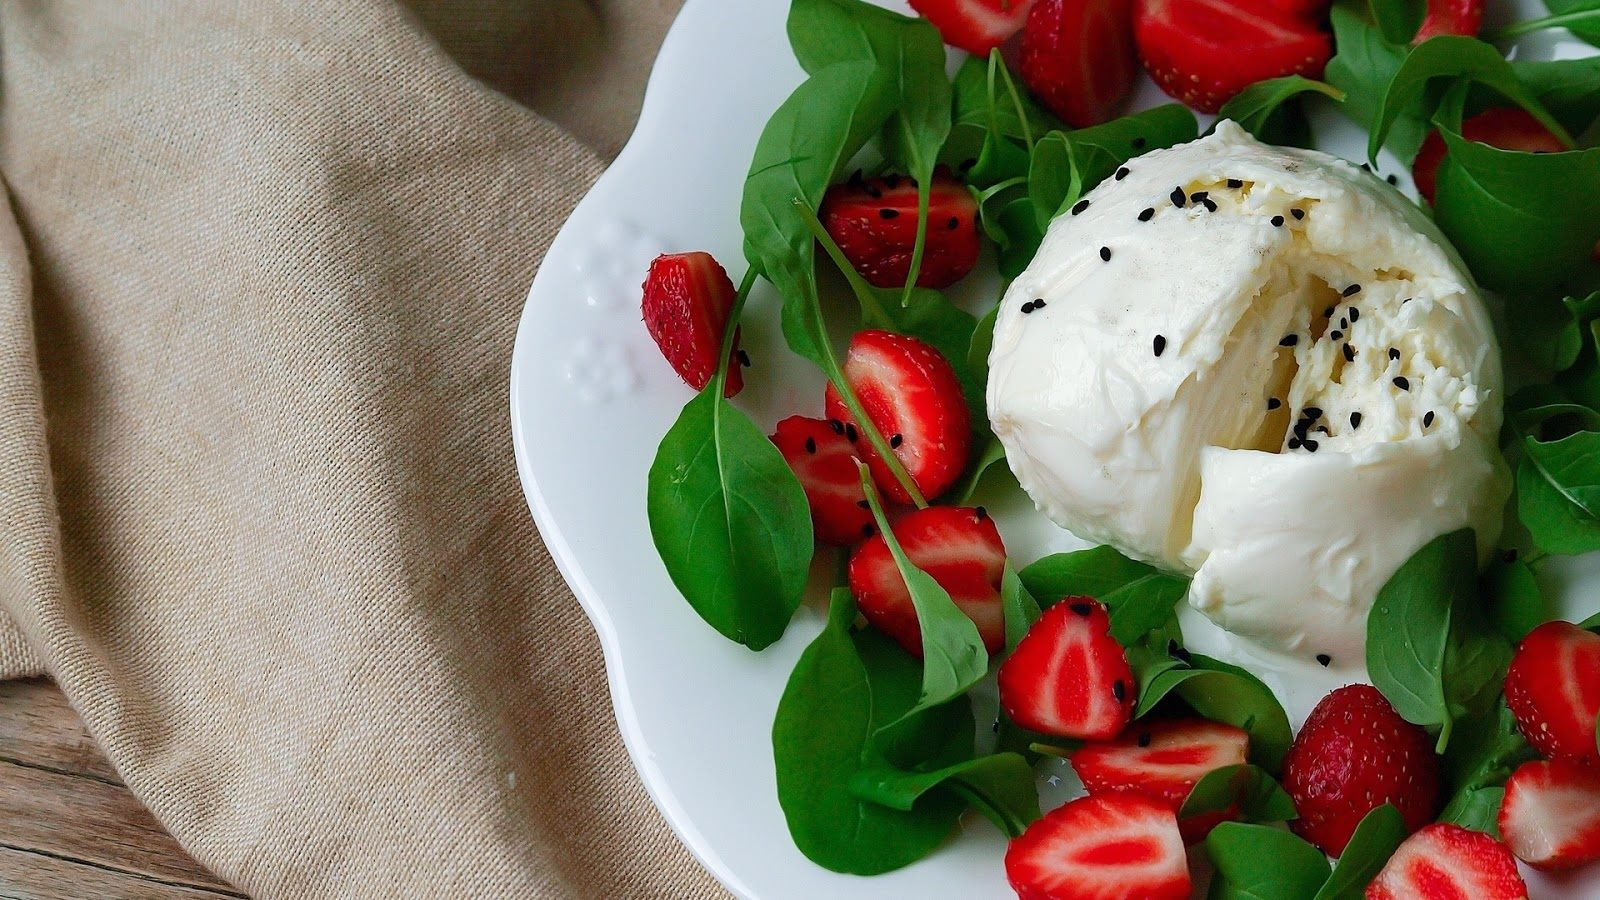 Burrata's uniqueness lies in its soft buttery centre, made from fresh cream and shredded mozzarella. Photo credit: Vallombrosa Cheese/Facebook